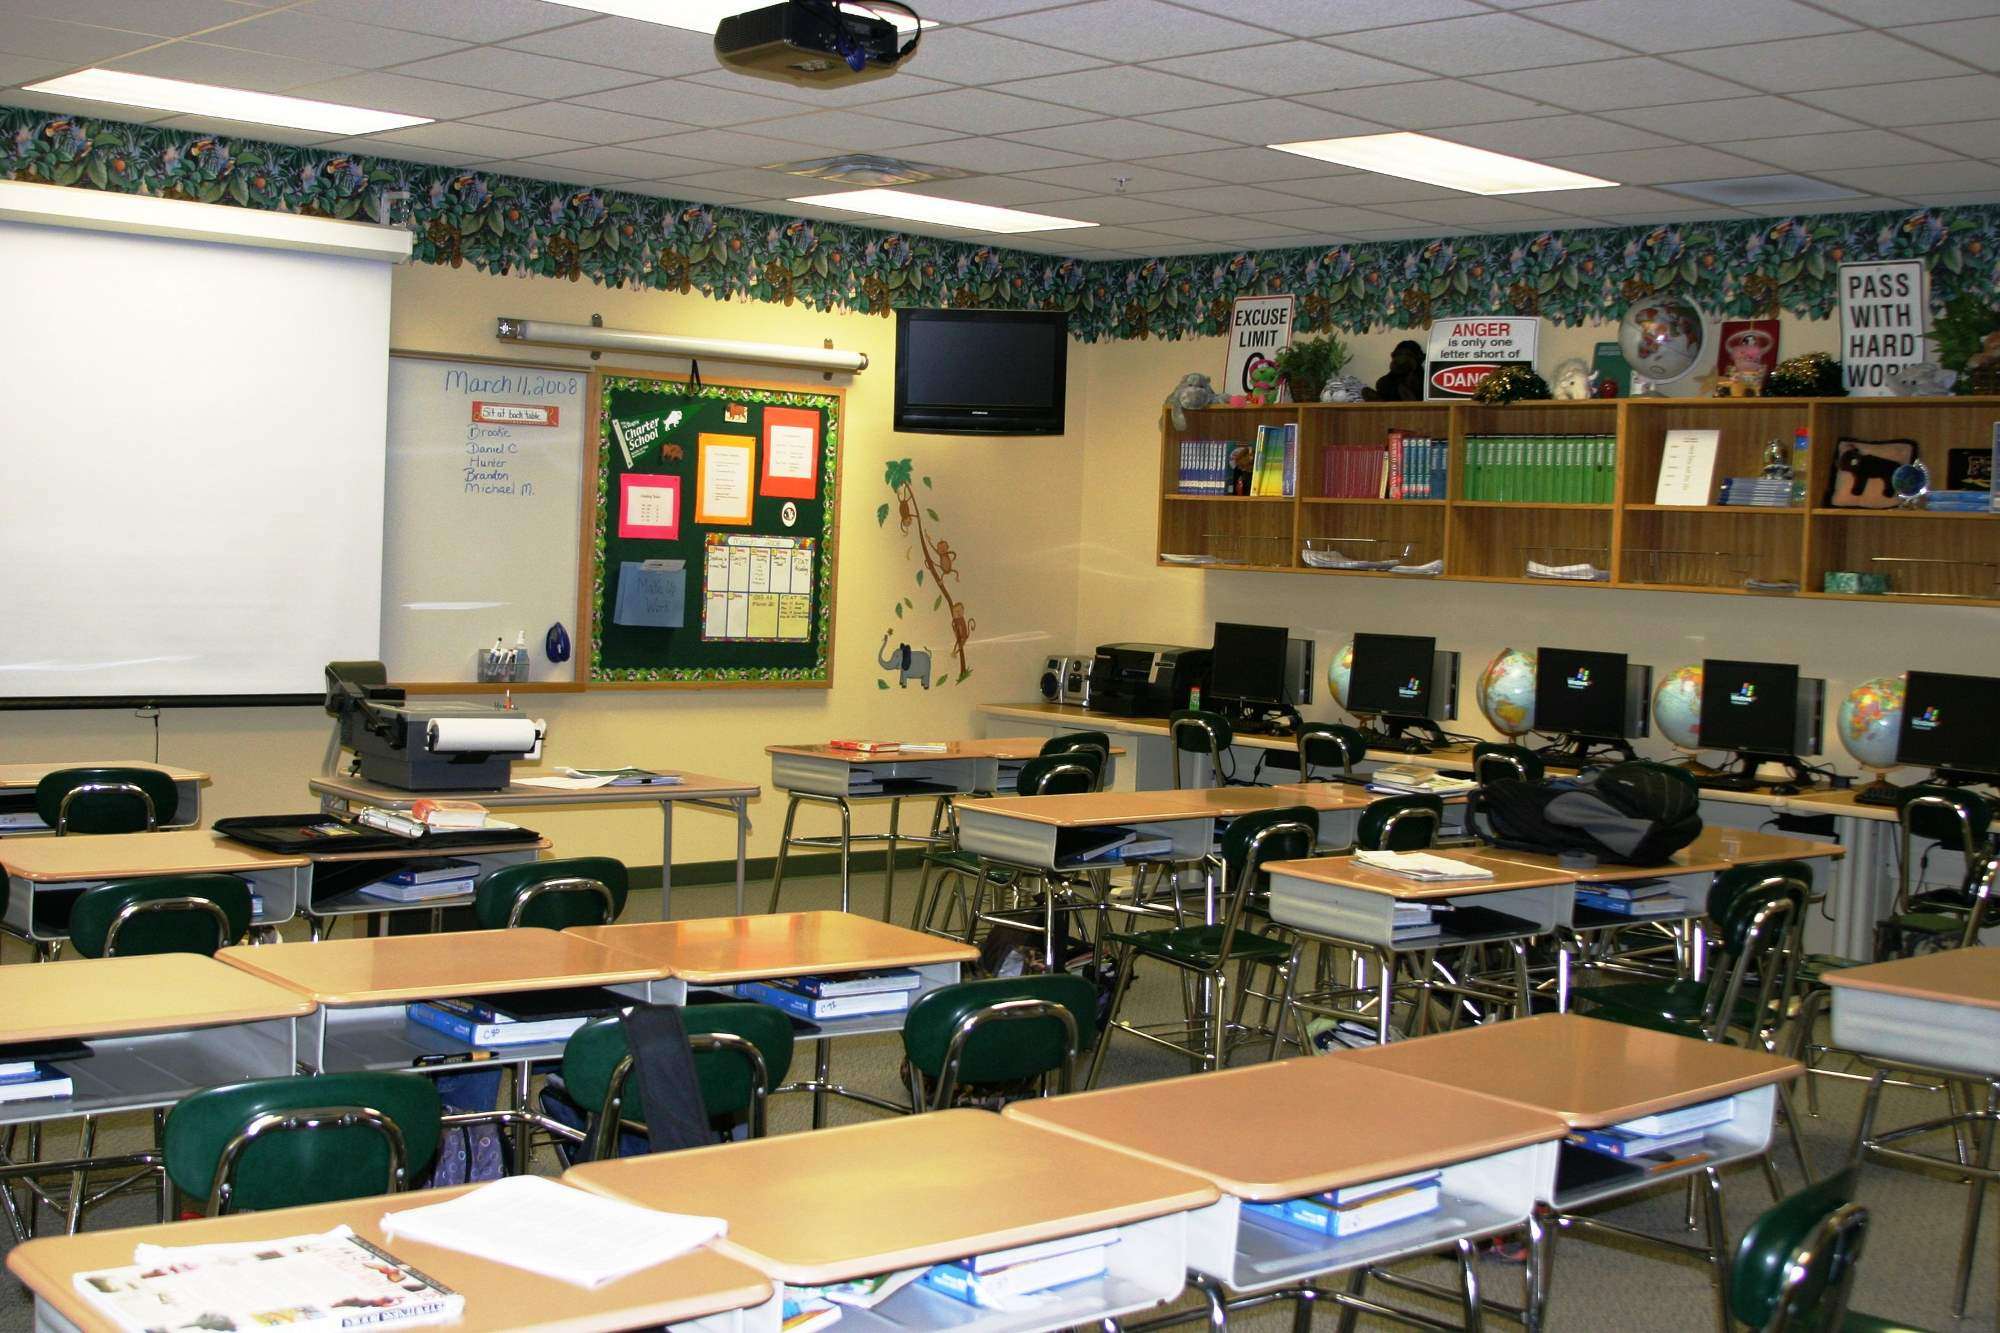 Middle School image 16 of 37